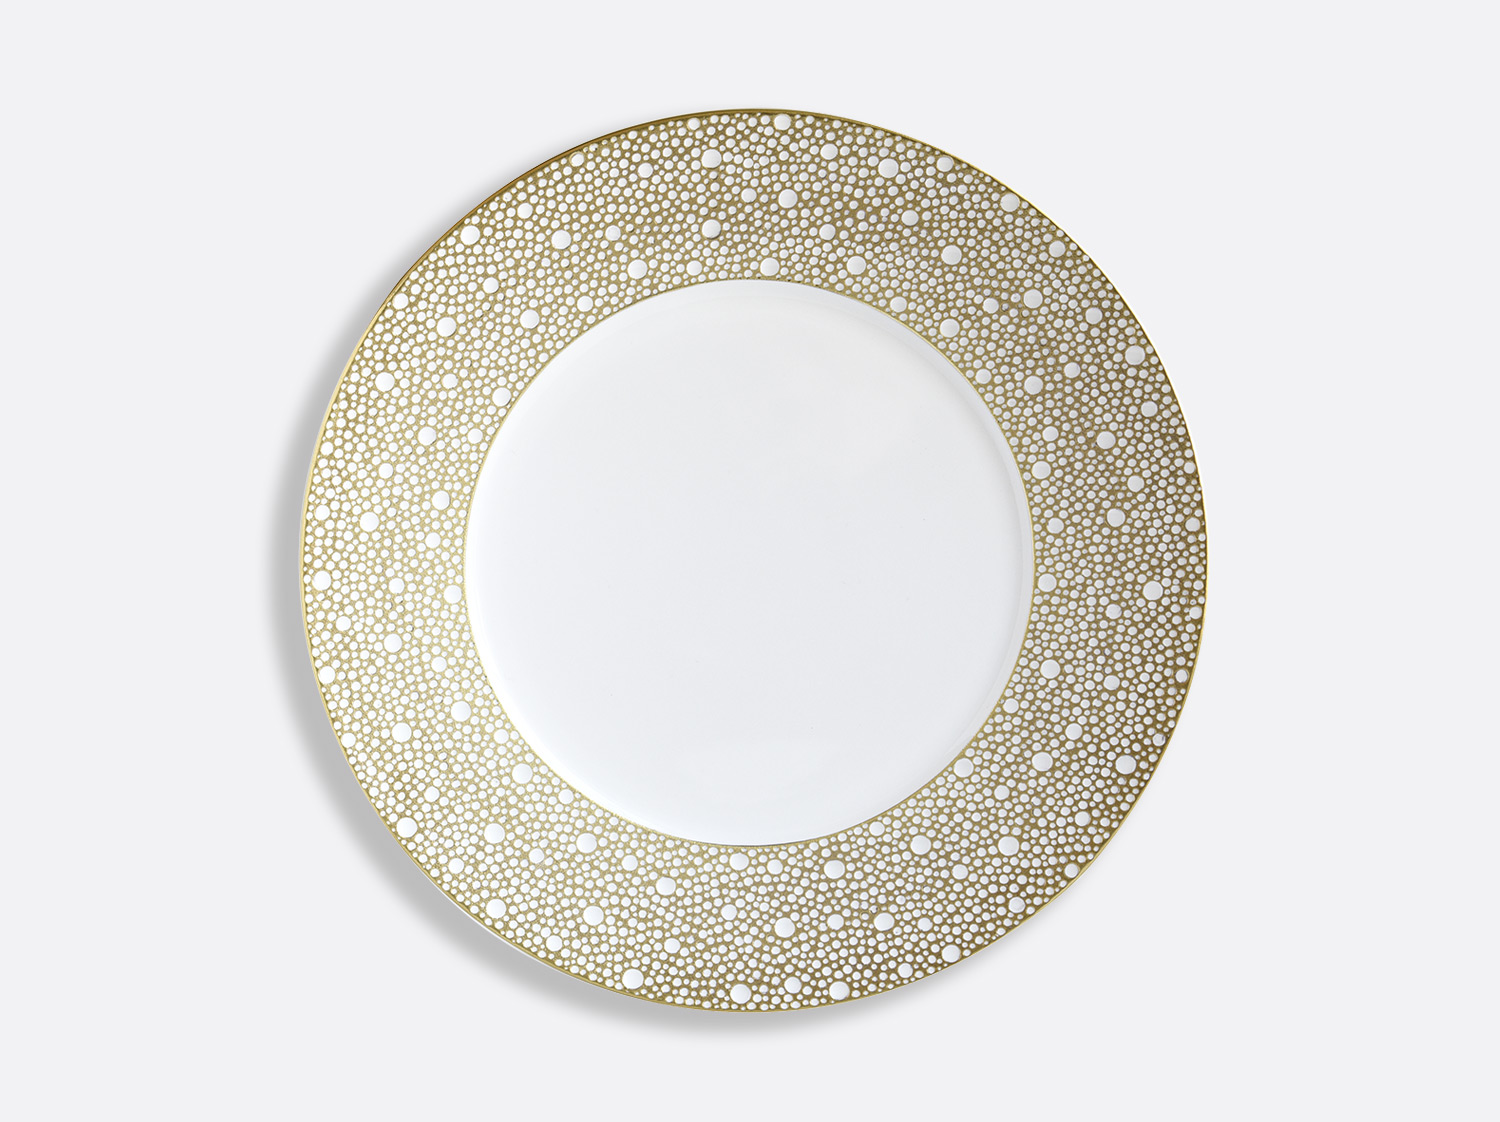 Assiette plate 29,5 cm en porcelaine de la collection Ecume Mordoré Bernardaud